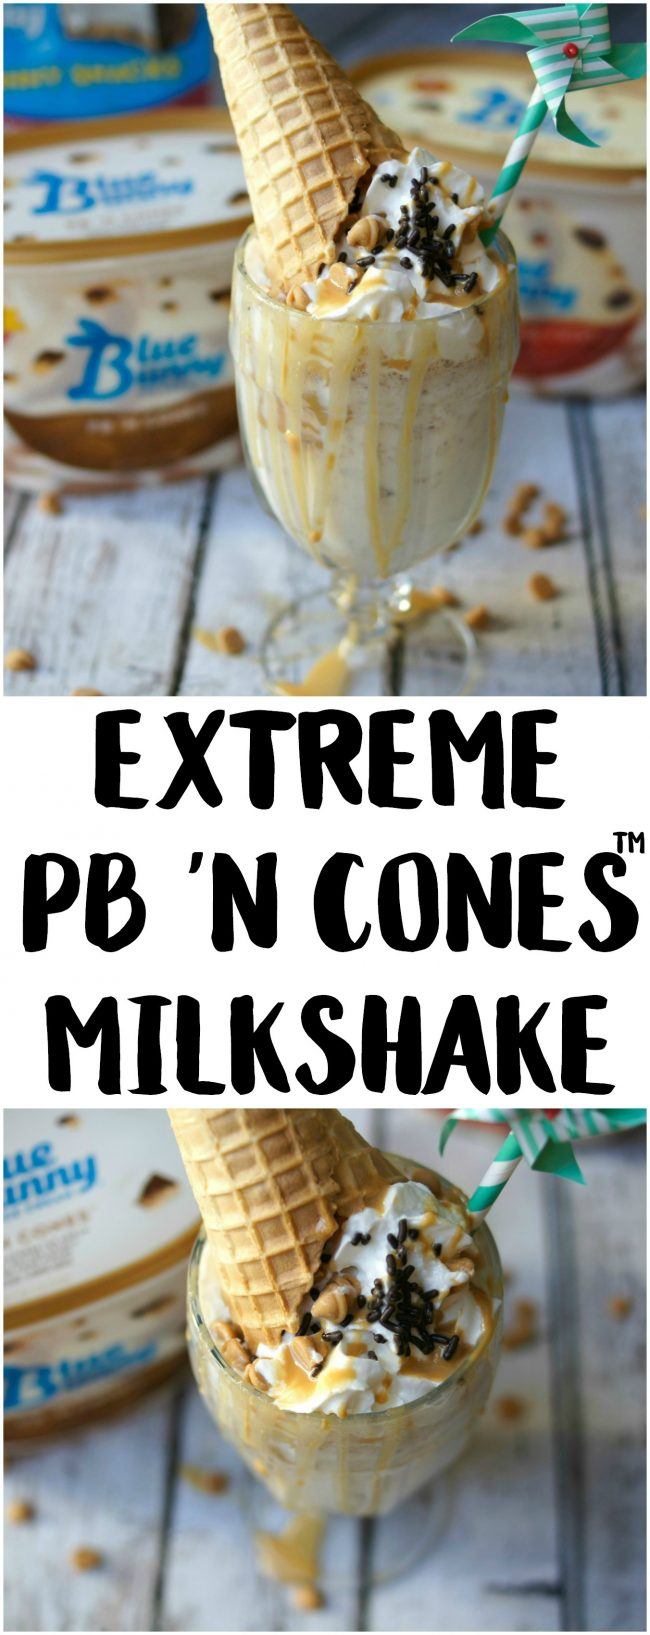 Have you ever had an extreme milkshake? They are popping up in restaurants around the world and each one of the ideas is more crazy than the next! Now you can DIY one at home, whether for parties or just desserts! This Extreme PB 'N Cones Milkshake recipe is filled with peanut buttery goodness, a touch of chocolate sweets, and a real ice cream cone on top!